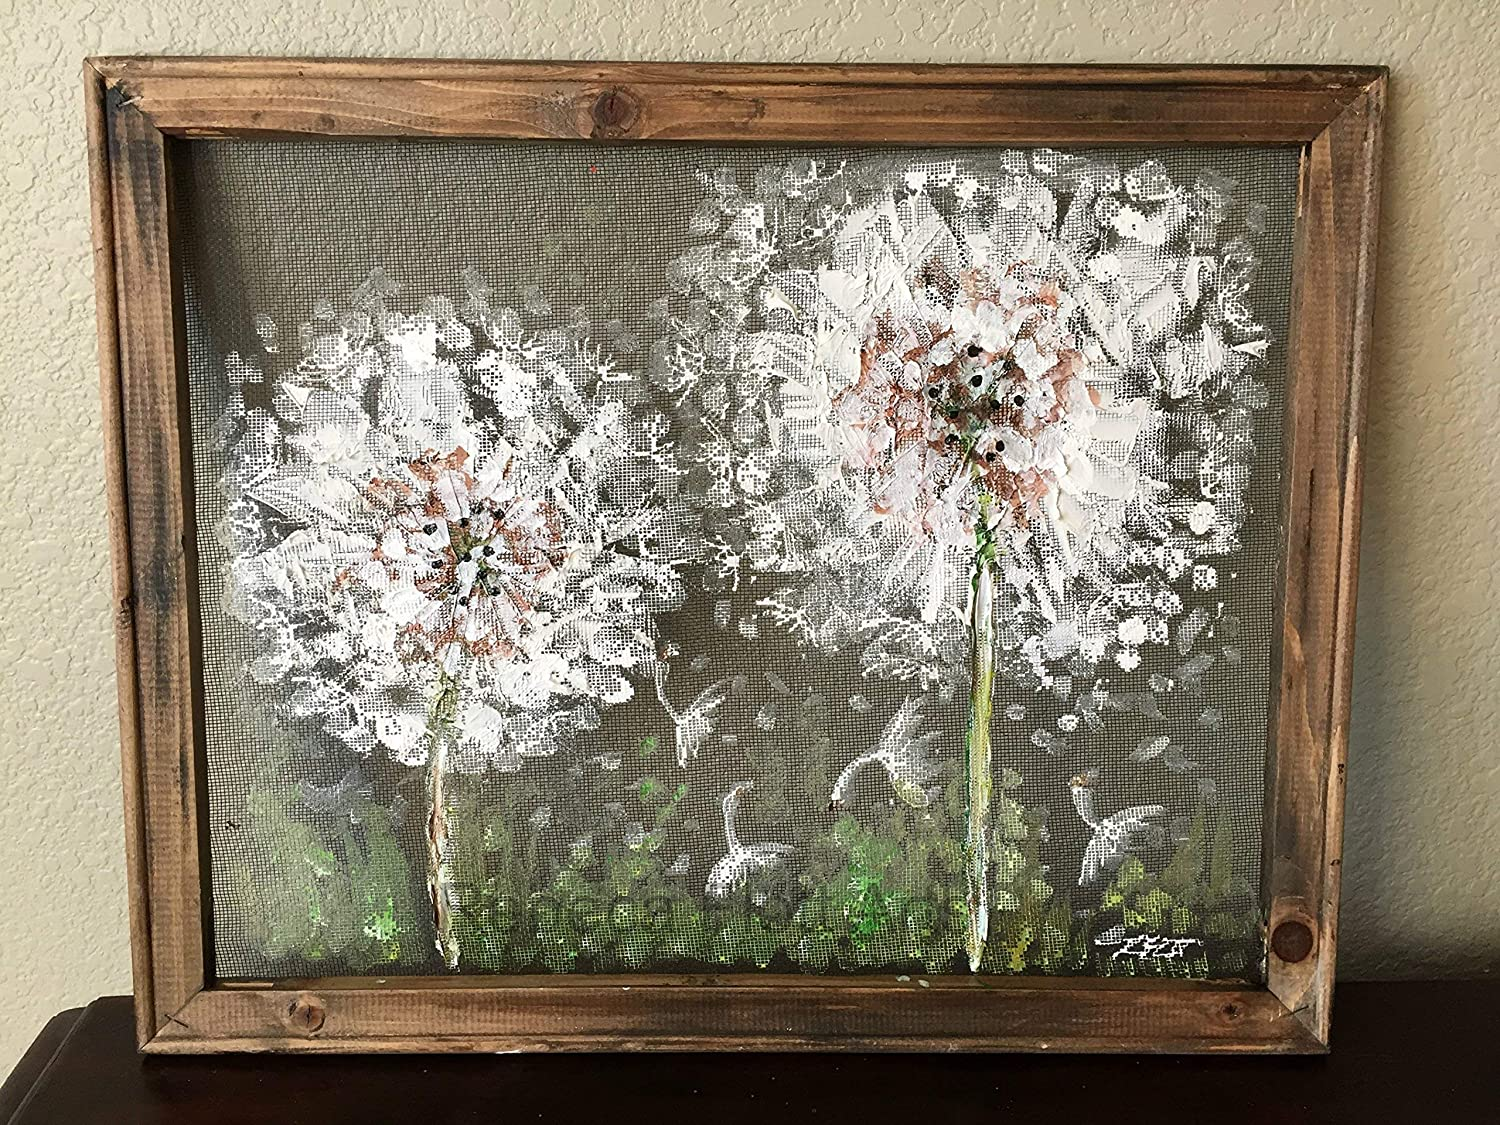 outdoor art,hand painting on screen Dandelion hand painted on screen,Rustic Dandelion